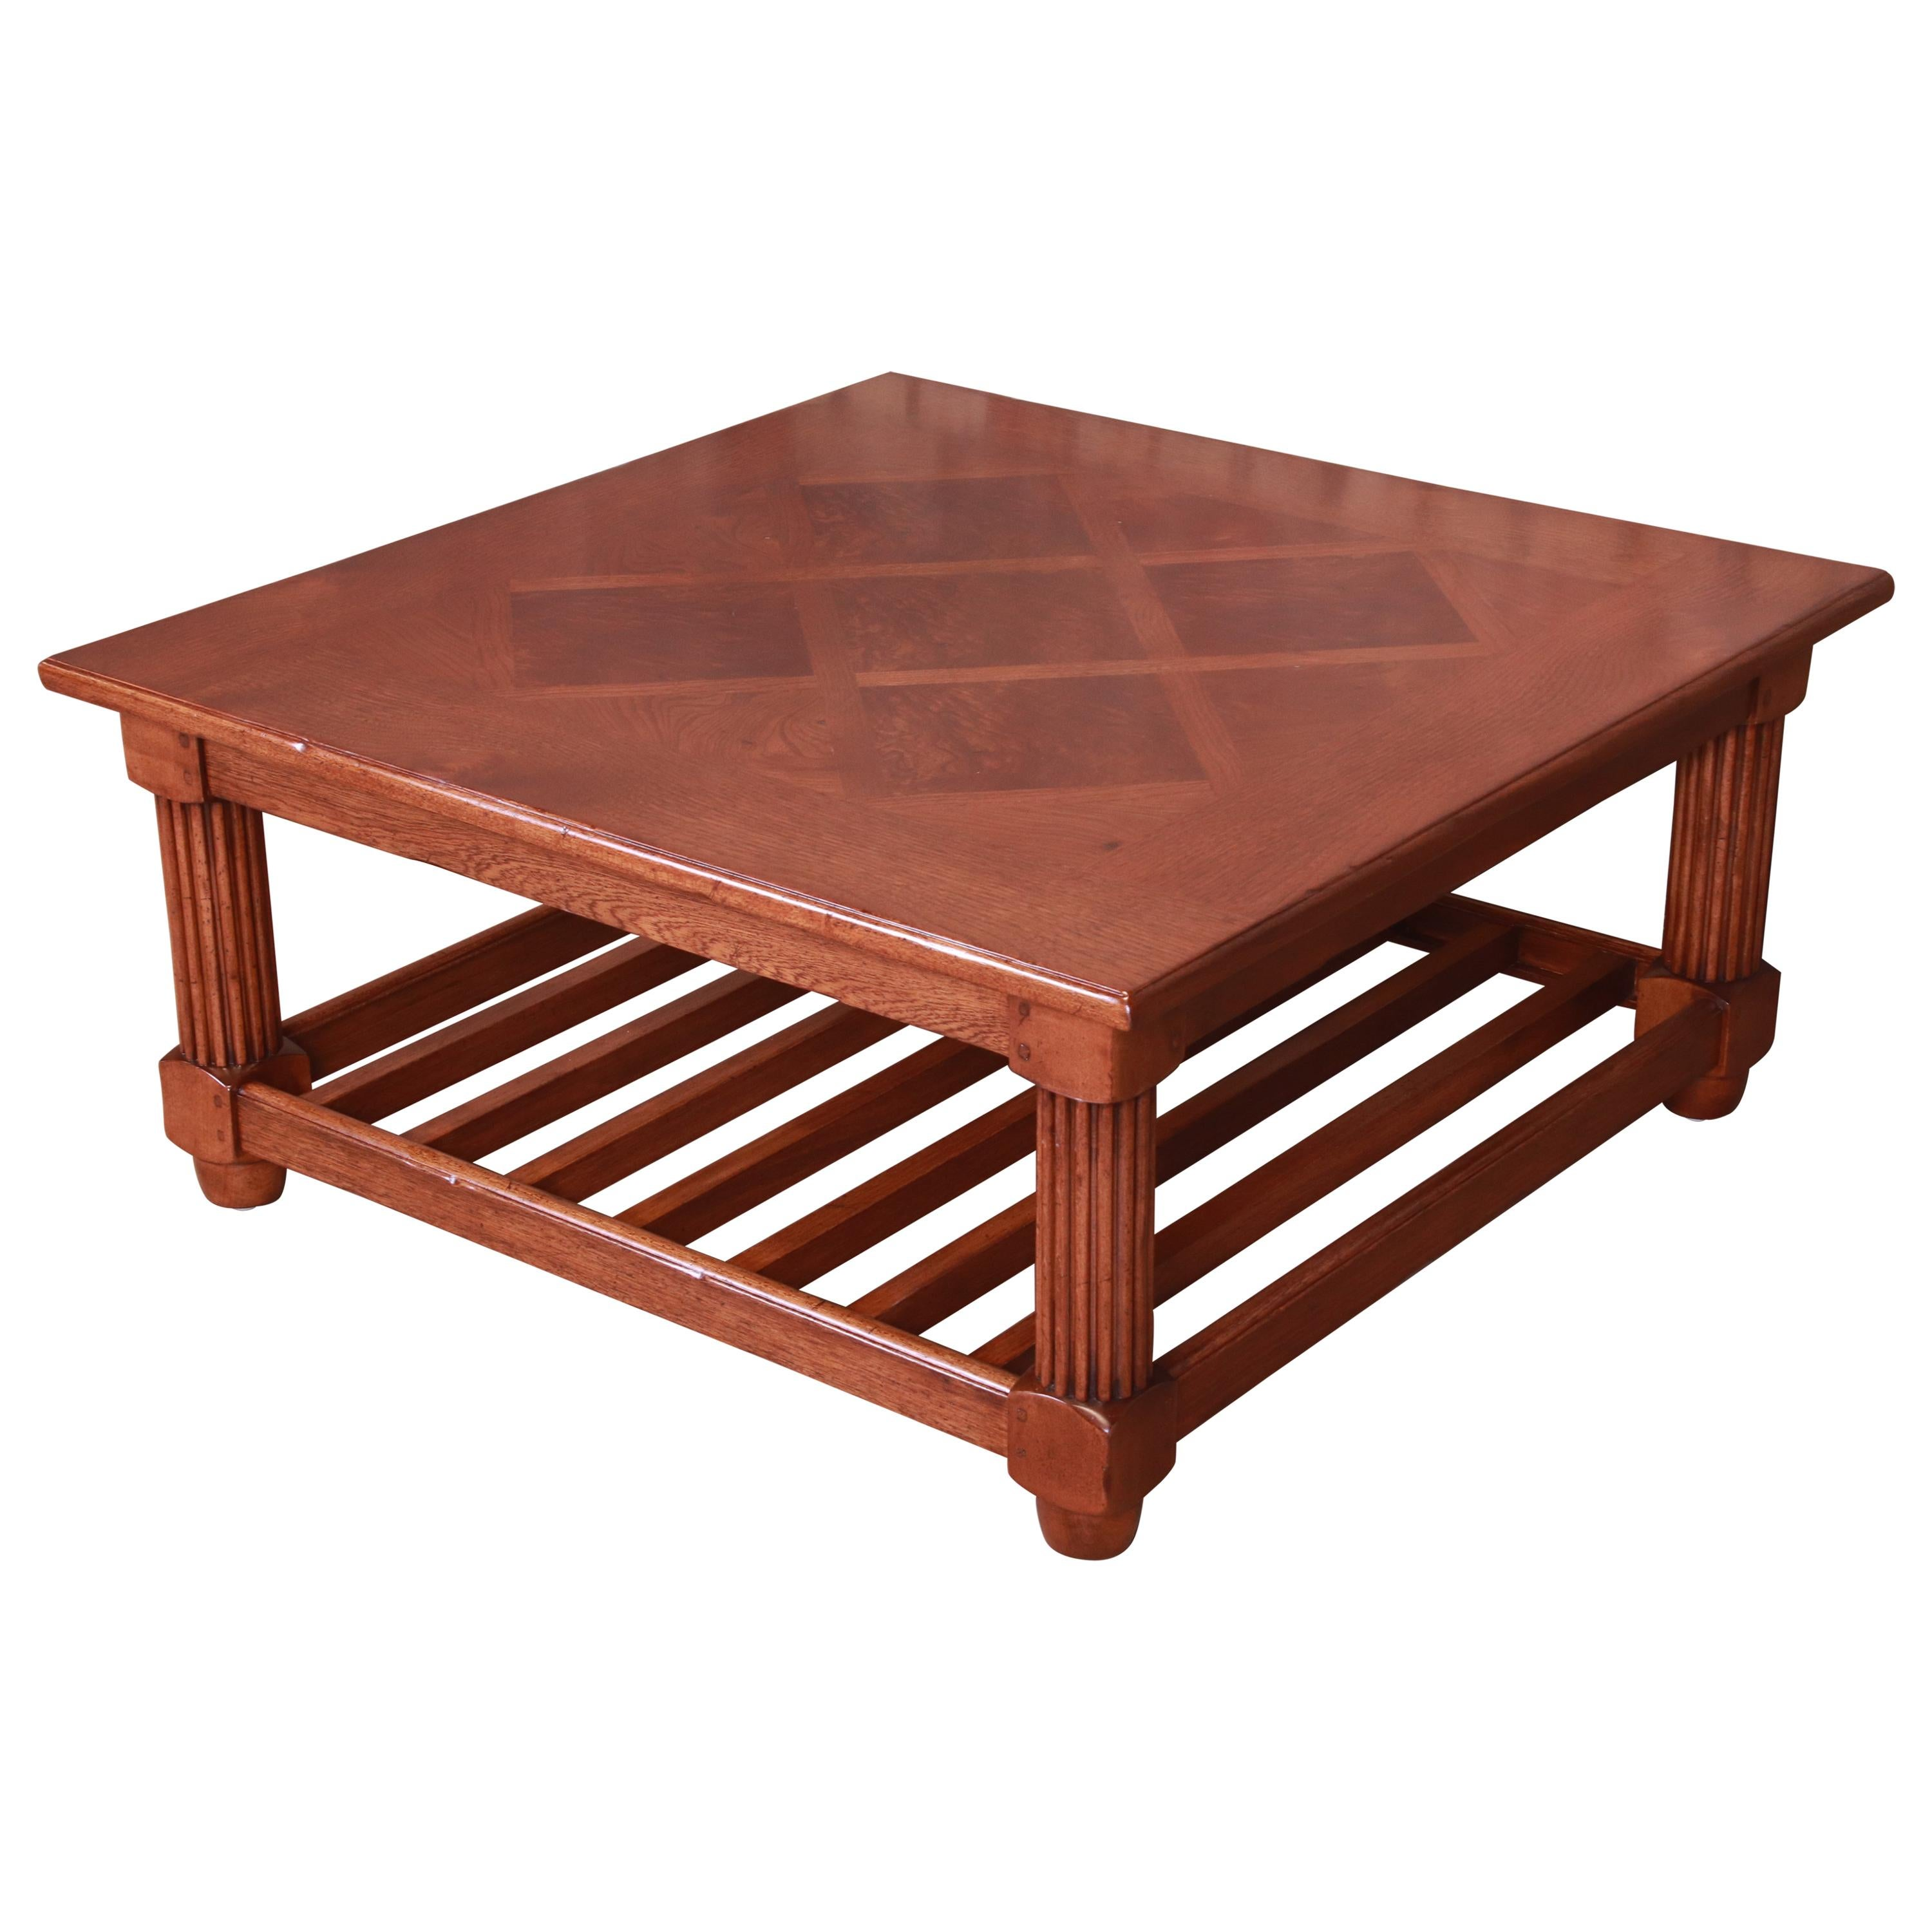 Baker Furniture Milling Road Italian Provincial Coffee Table, Newly Refinished